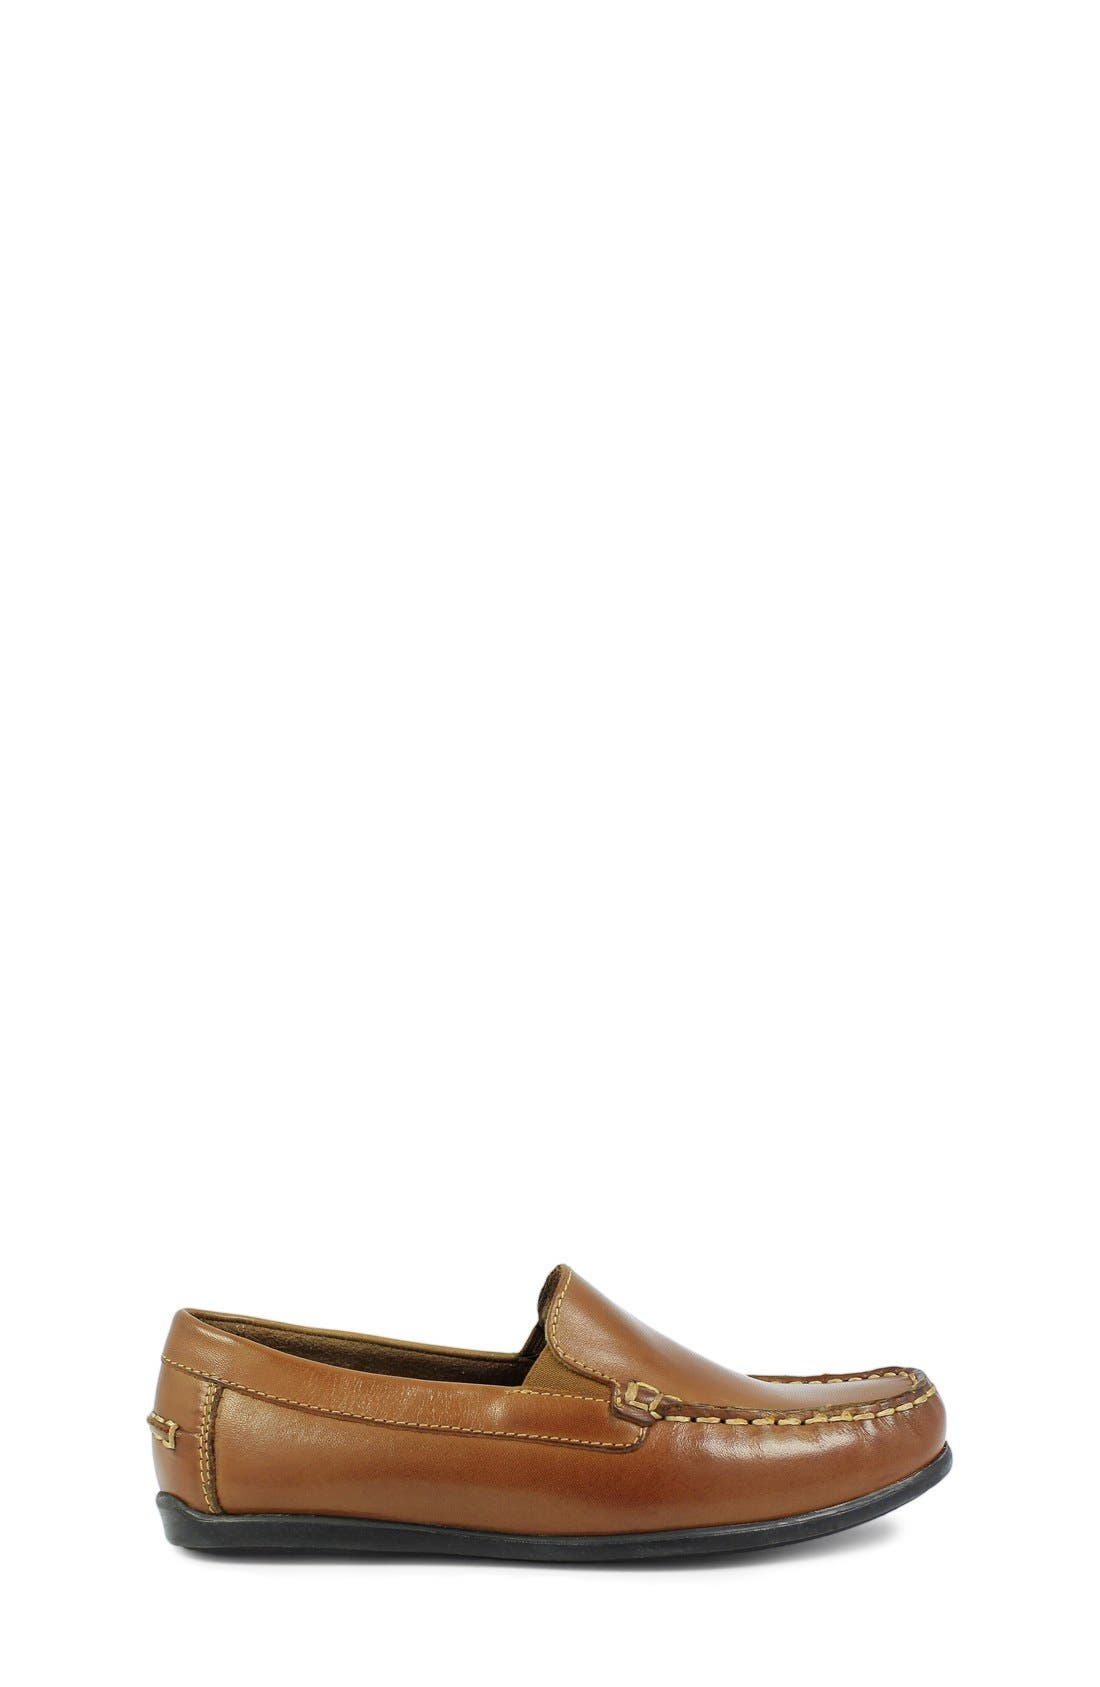 'Jasper - Venetian Jr.' Loafer,                             Alternate thumbnail 6, color,                             Saddle Tan Leather